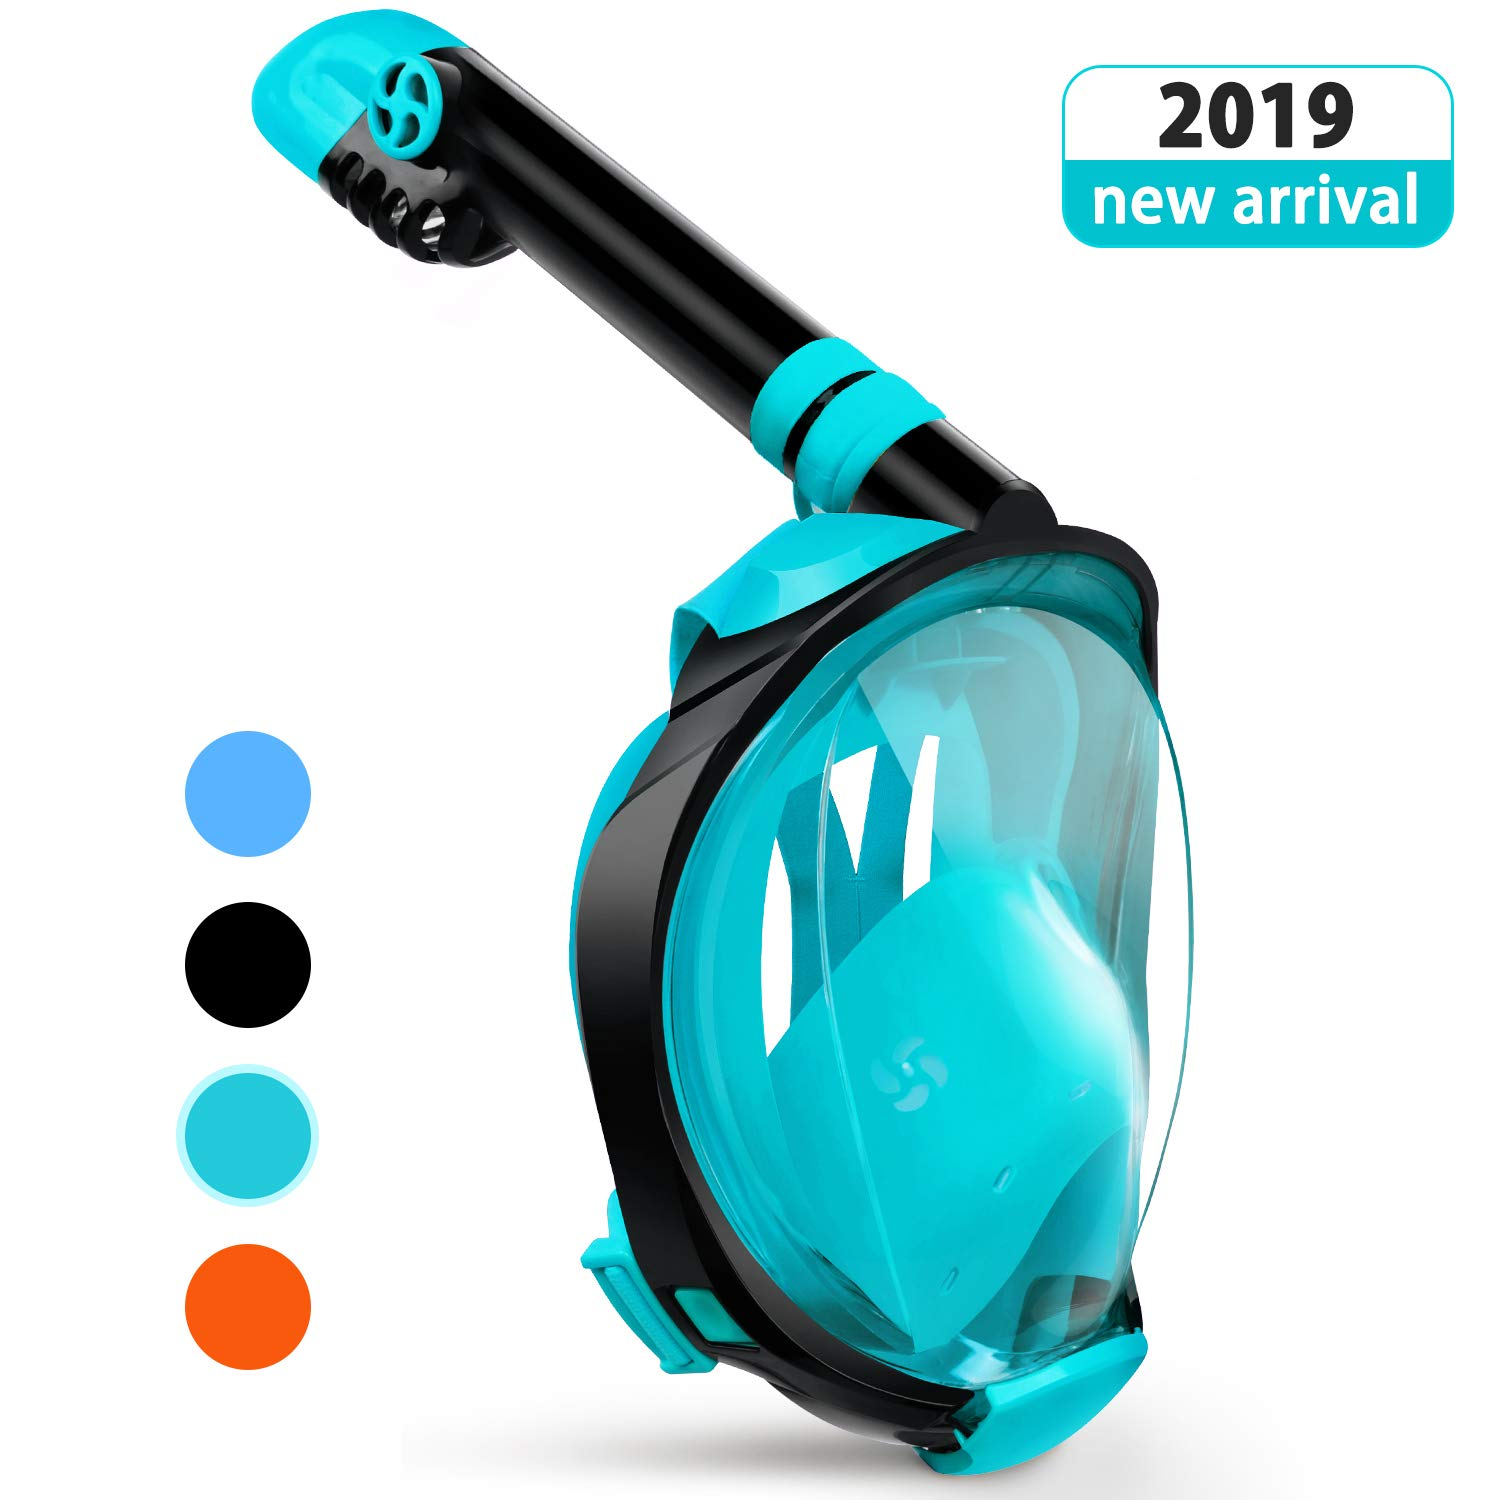 Greatever G2 Full Face Snorkel Mask with Latest Dry Top System,Foldable 180 Degree Panoramic View Snorkeling Mask with Camera Mount,Safe Breathing,Anti-Leak&Anti-Fog by Greatever